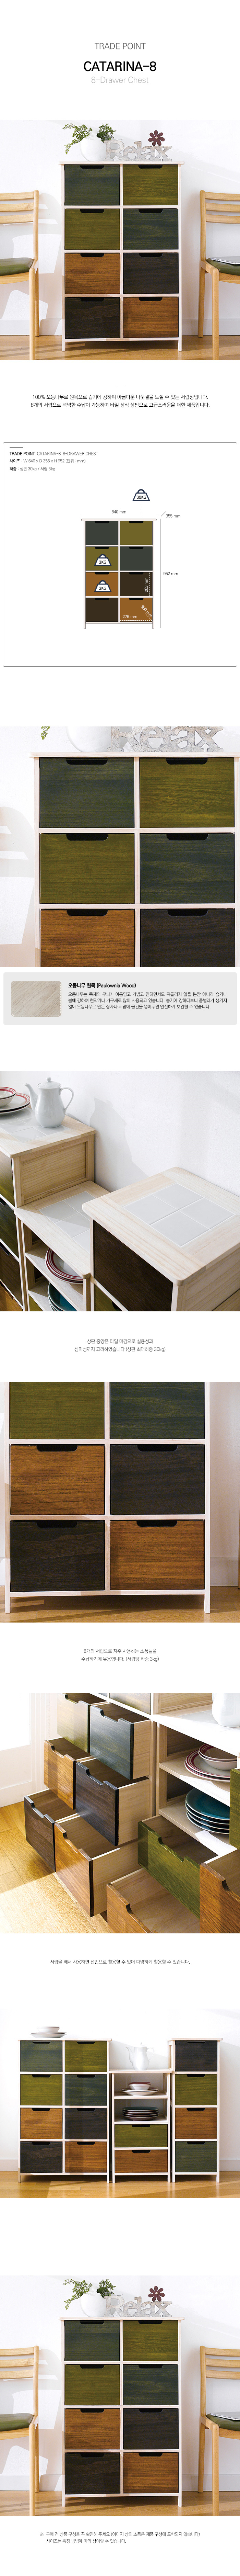 Catarina-8-8-Drawer-Chest_180509.jpg